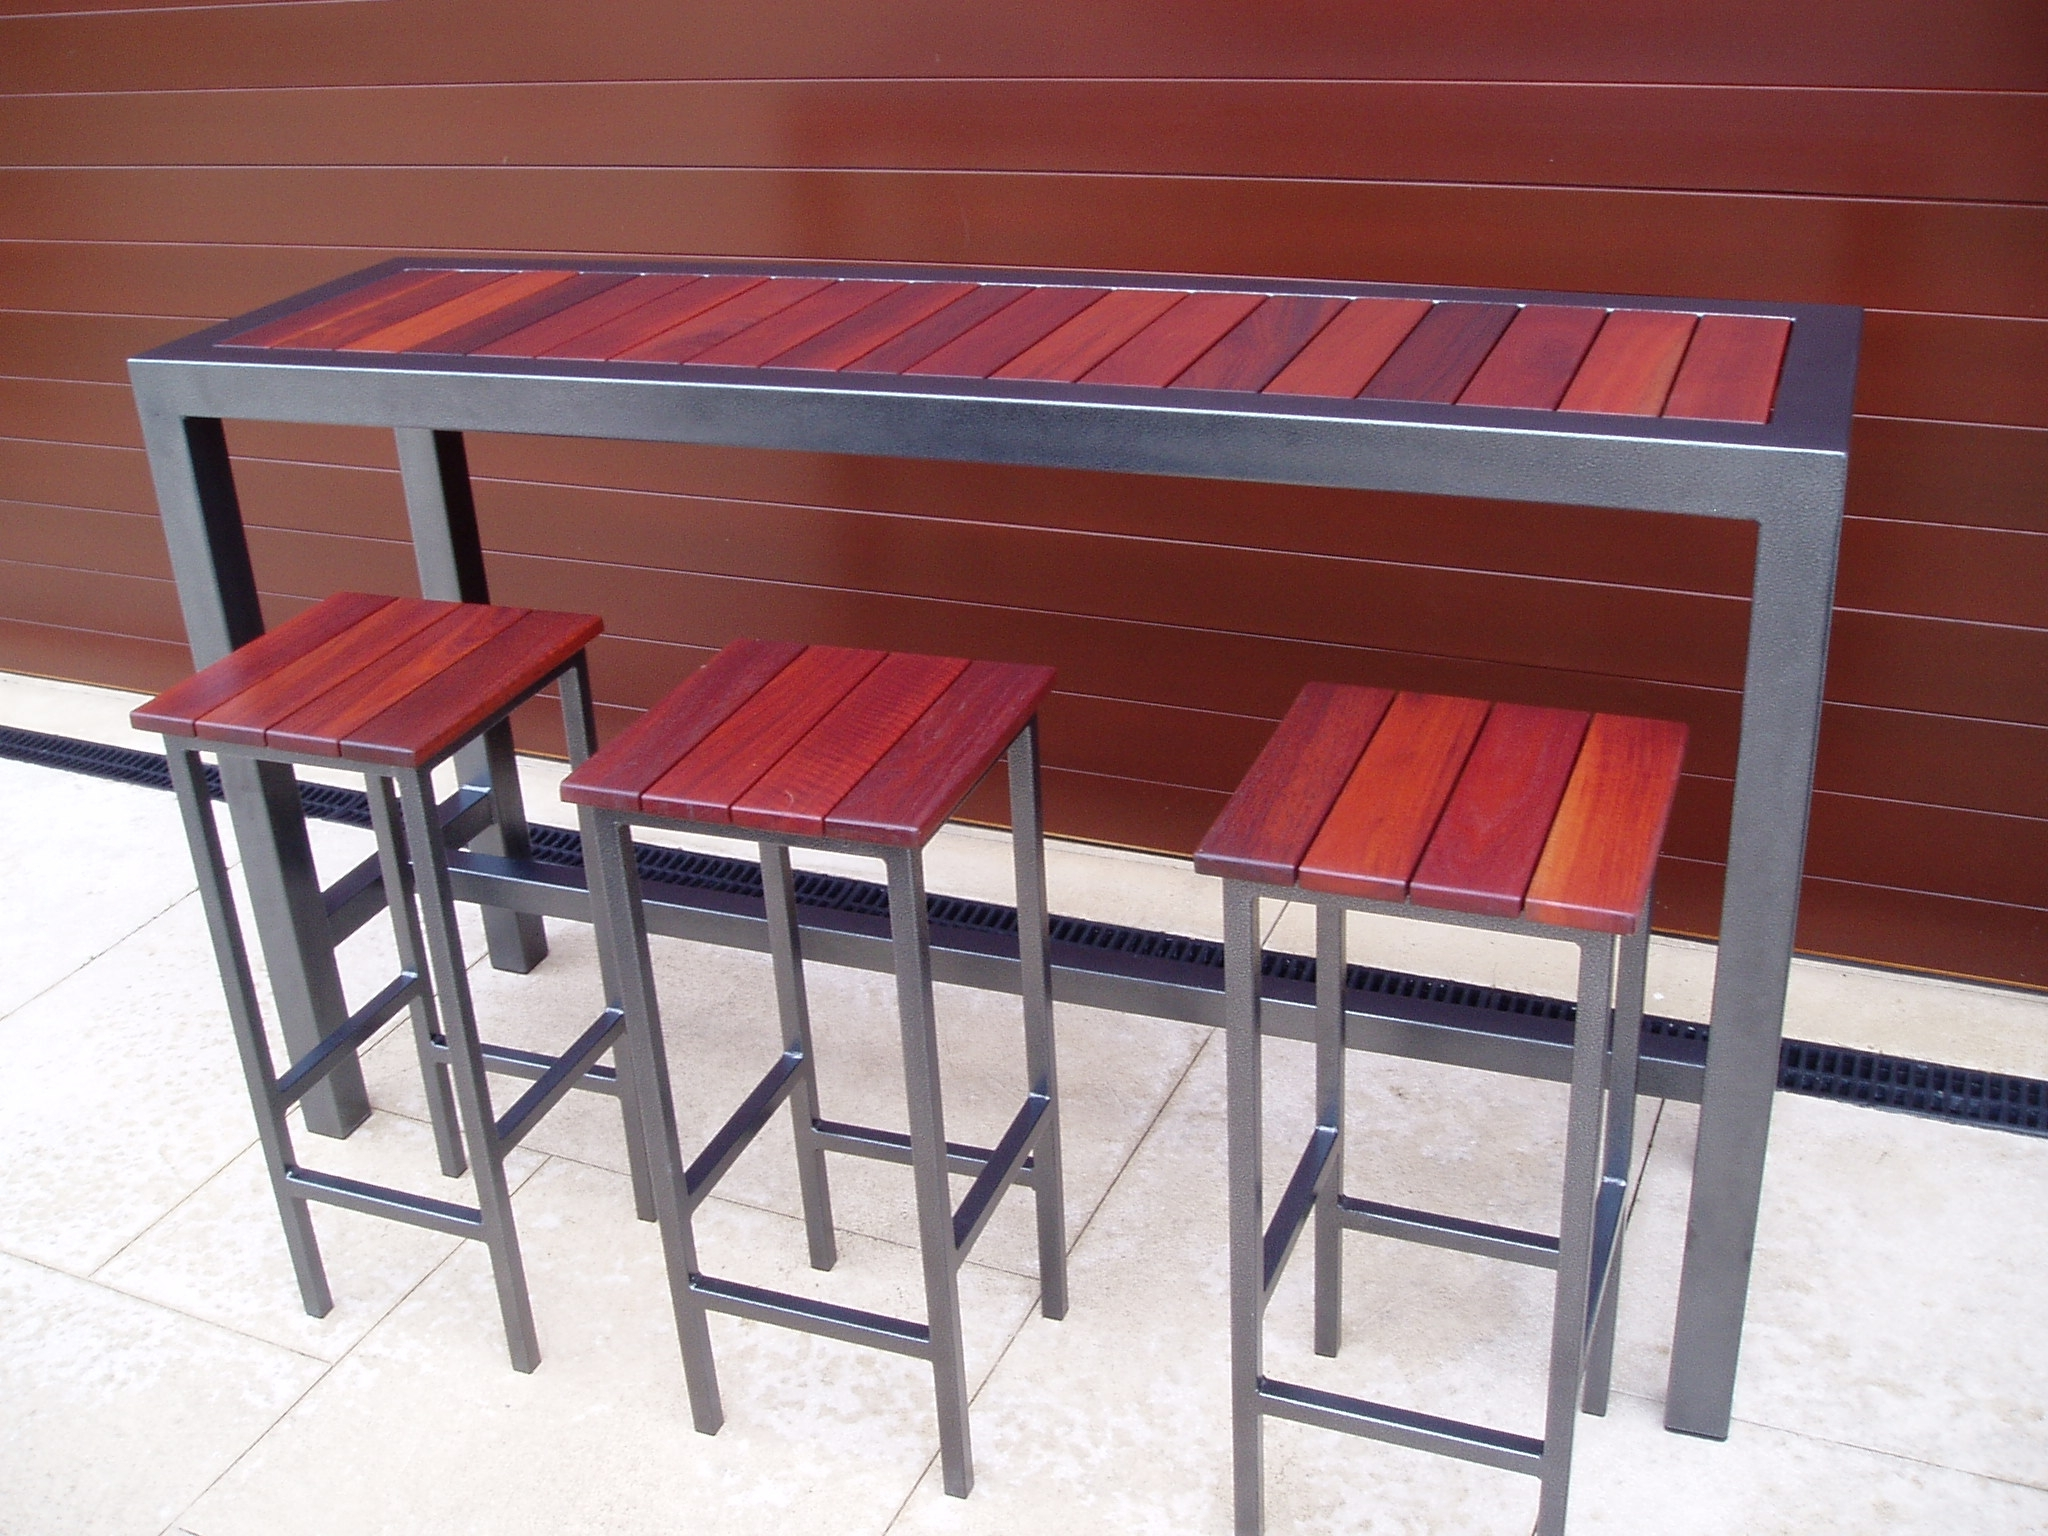 Image of: Outdoor Bar Stools And Tables Throughout Bar Stool Outdoor Furniture Enjoy The Summer With Bar Stool Outdoor Furniture